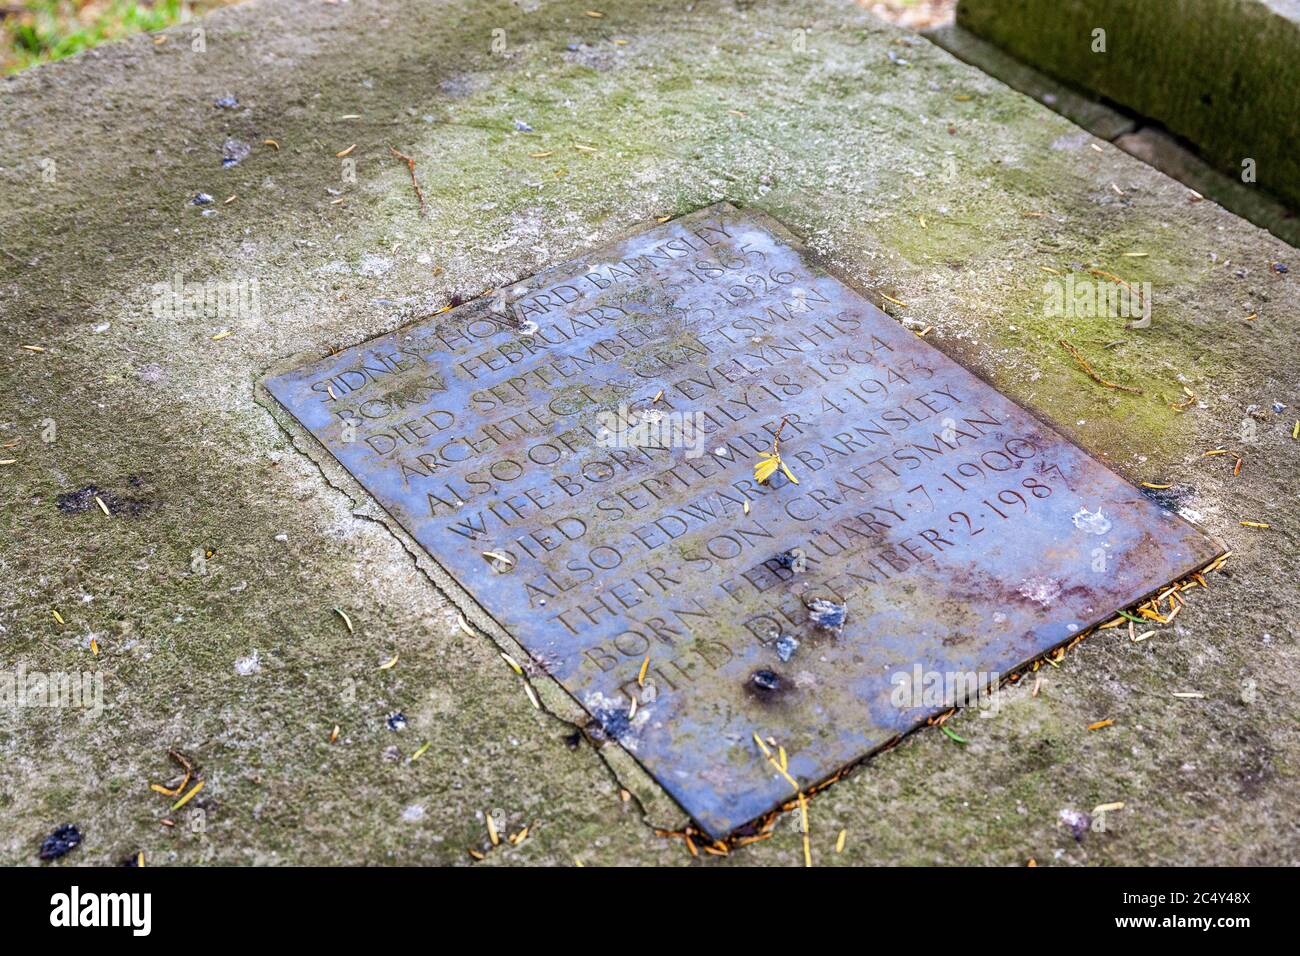 Grave Of Sidney Barnsley Arts Crafts Architect Craftsman In Churchyard Of St Kenelms Church In The Cotswold Village Of Sapperton Gloucestershire Stock Photo Alamy